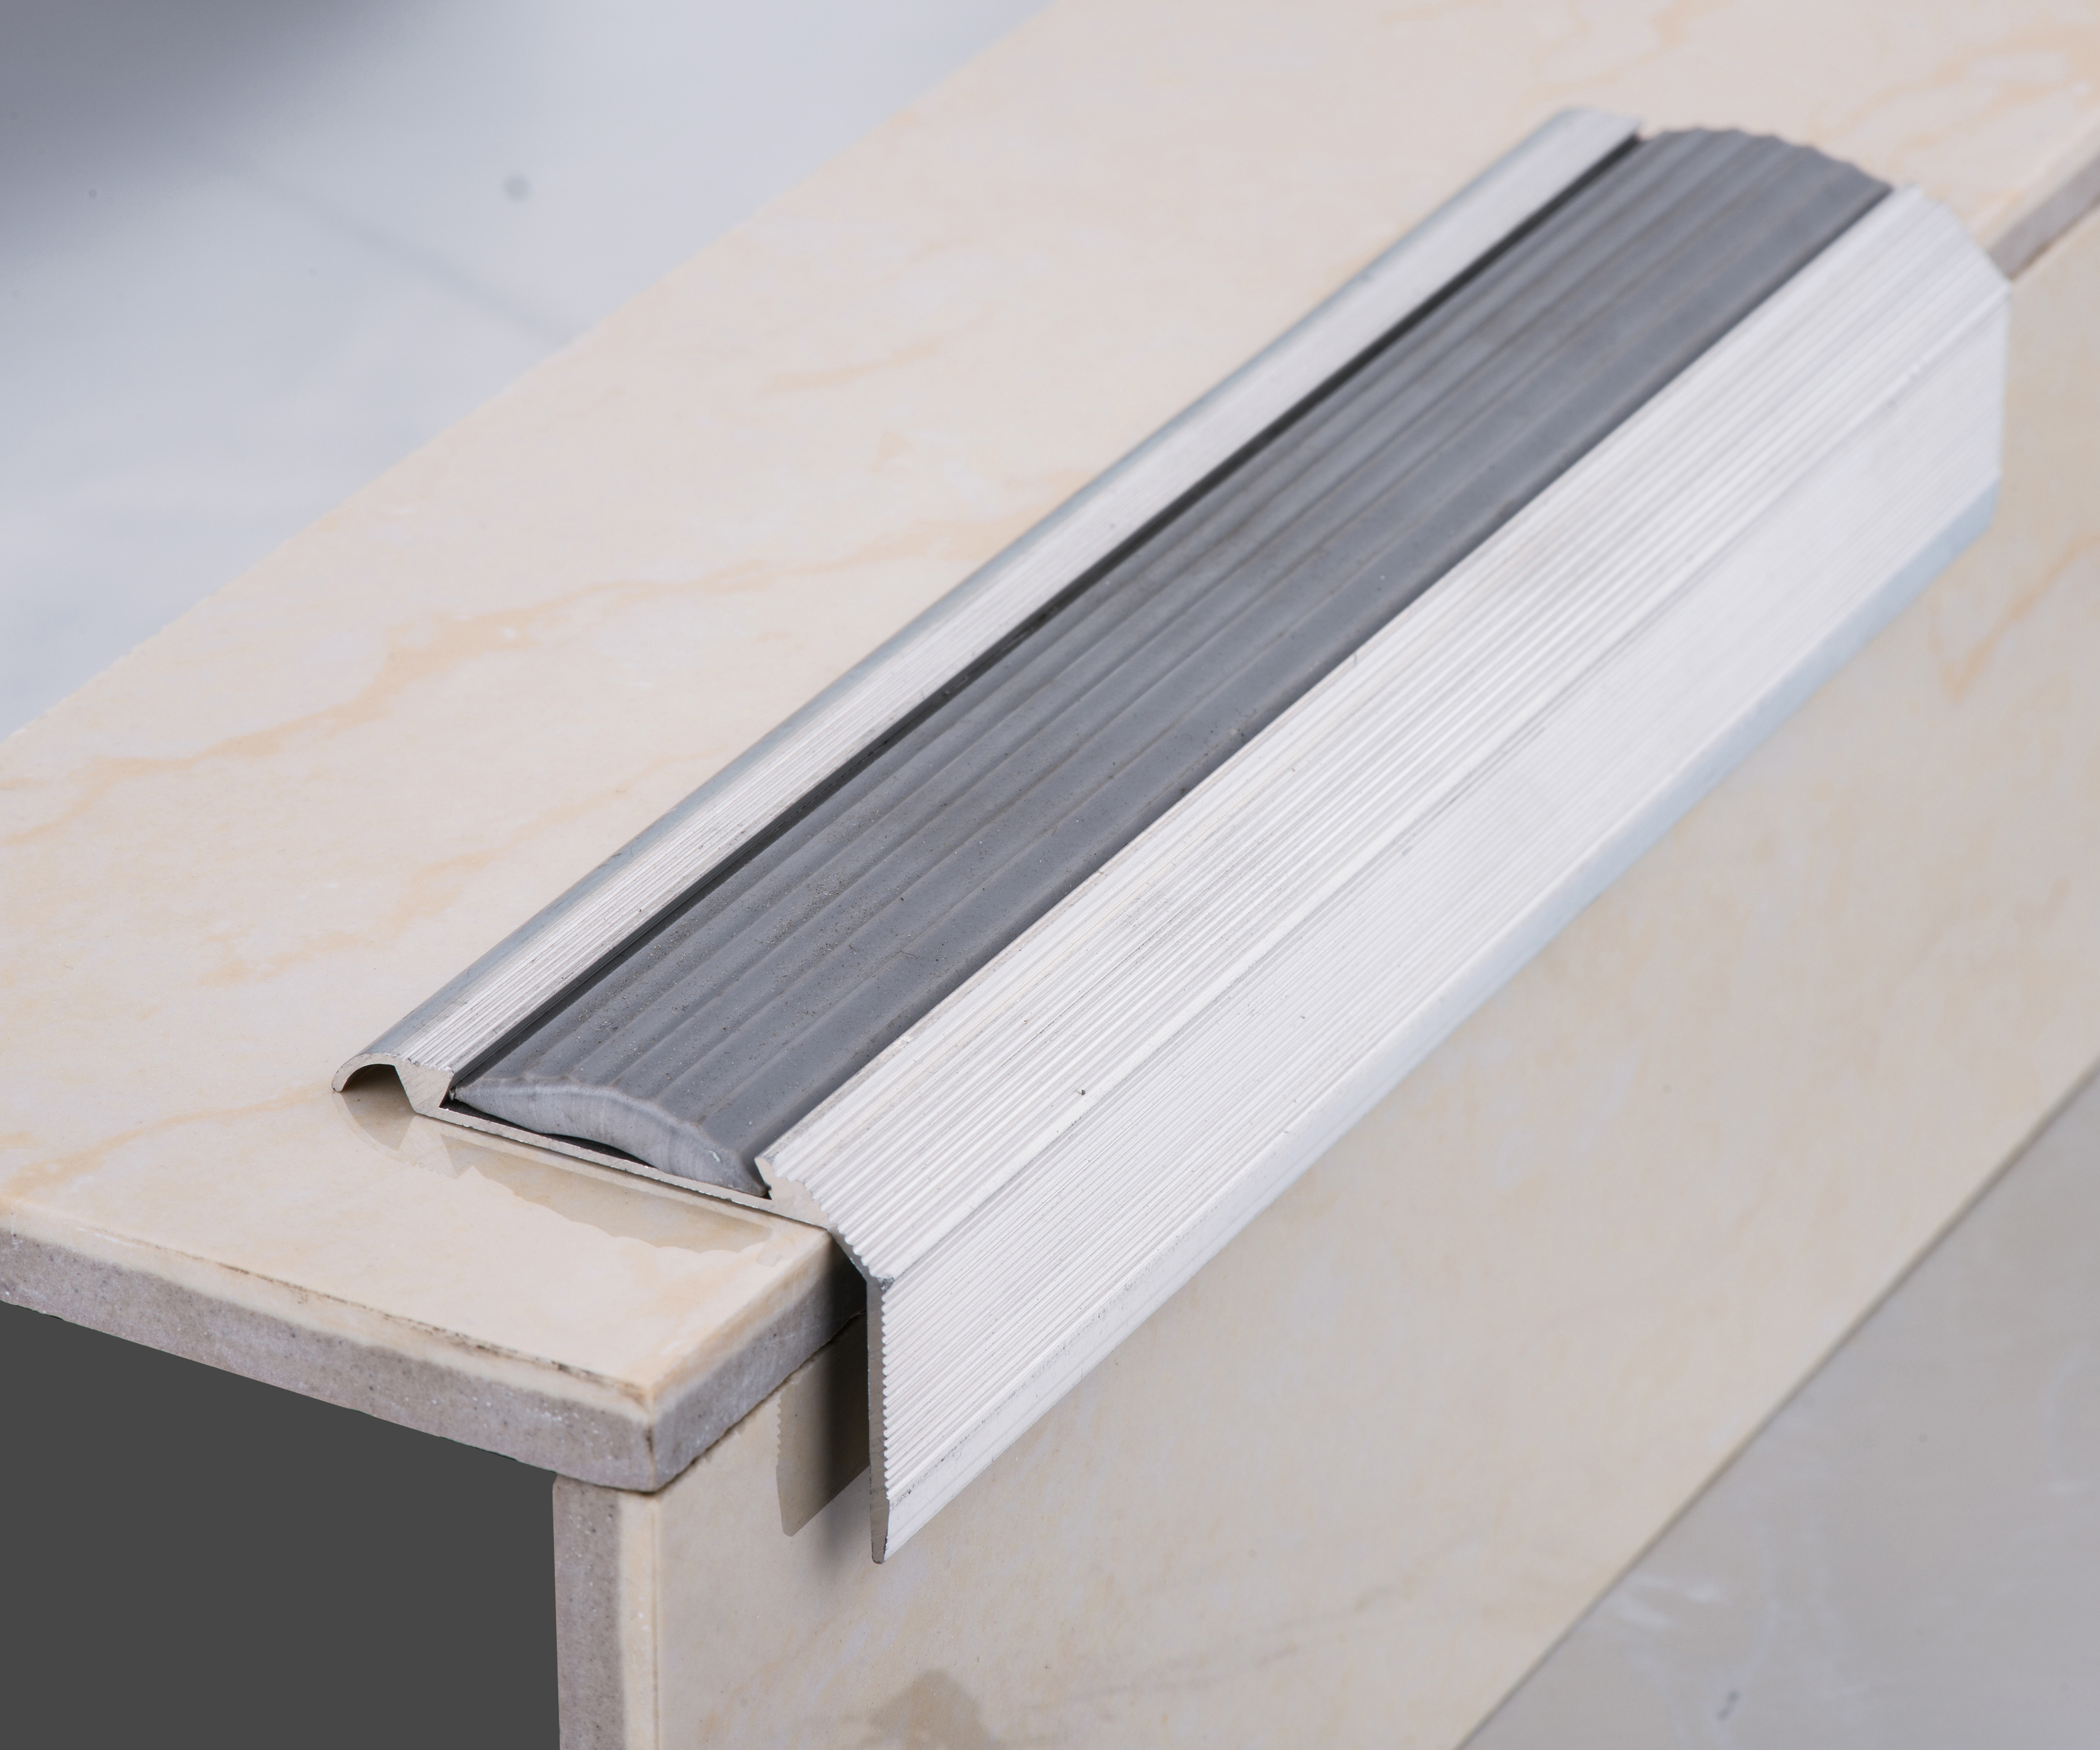 composite stair tread buy composite stair tread ceramic tile stair nosing porcelain tile stair nosing product on alibaba com